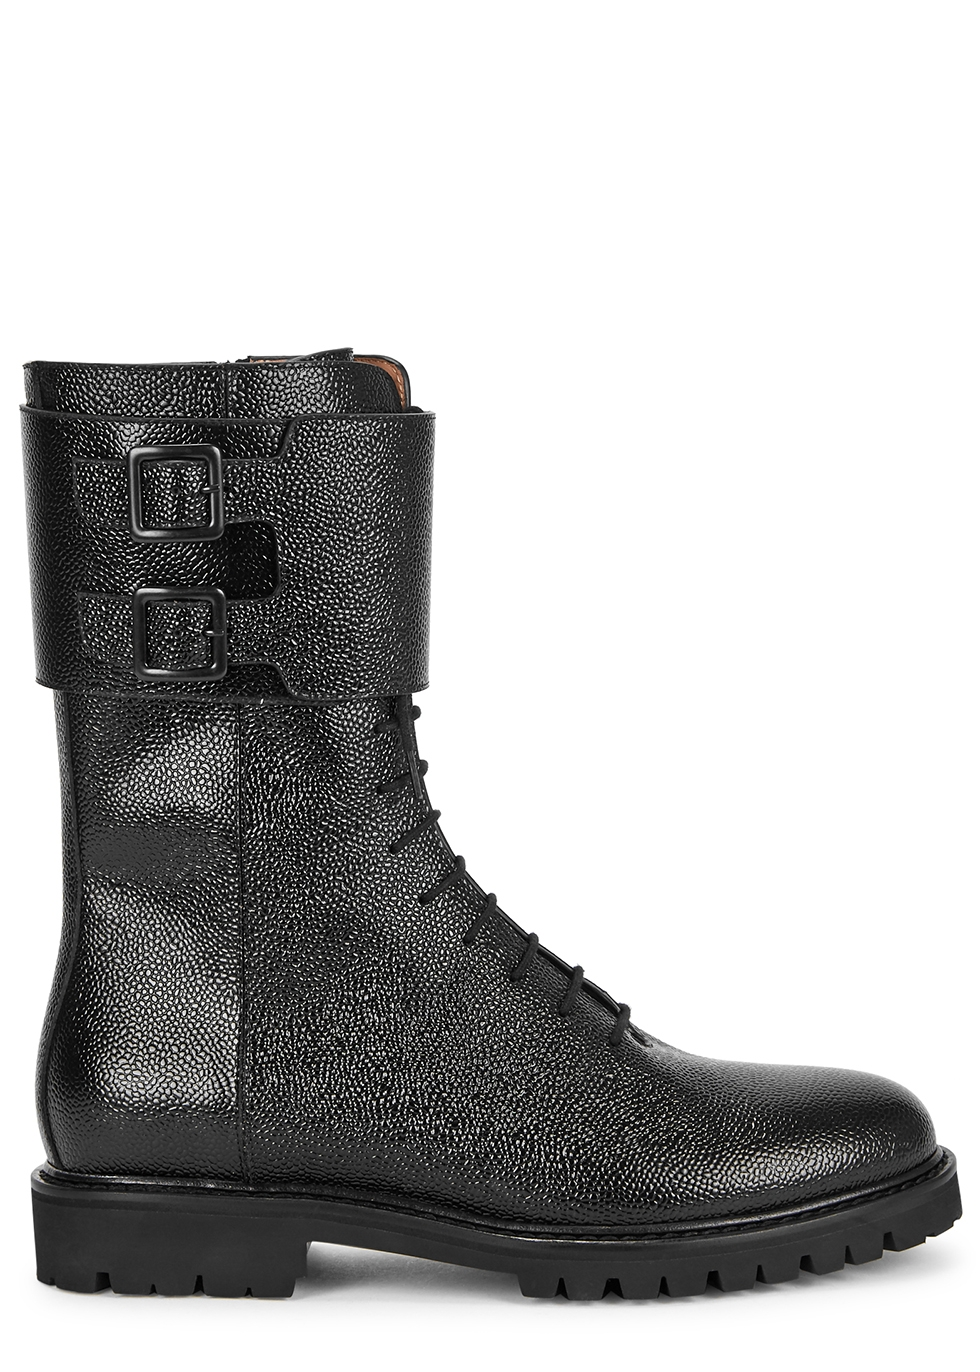 Black glossed leather ankle boots